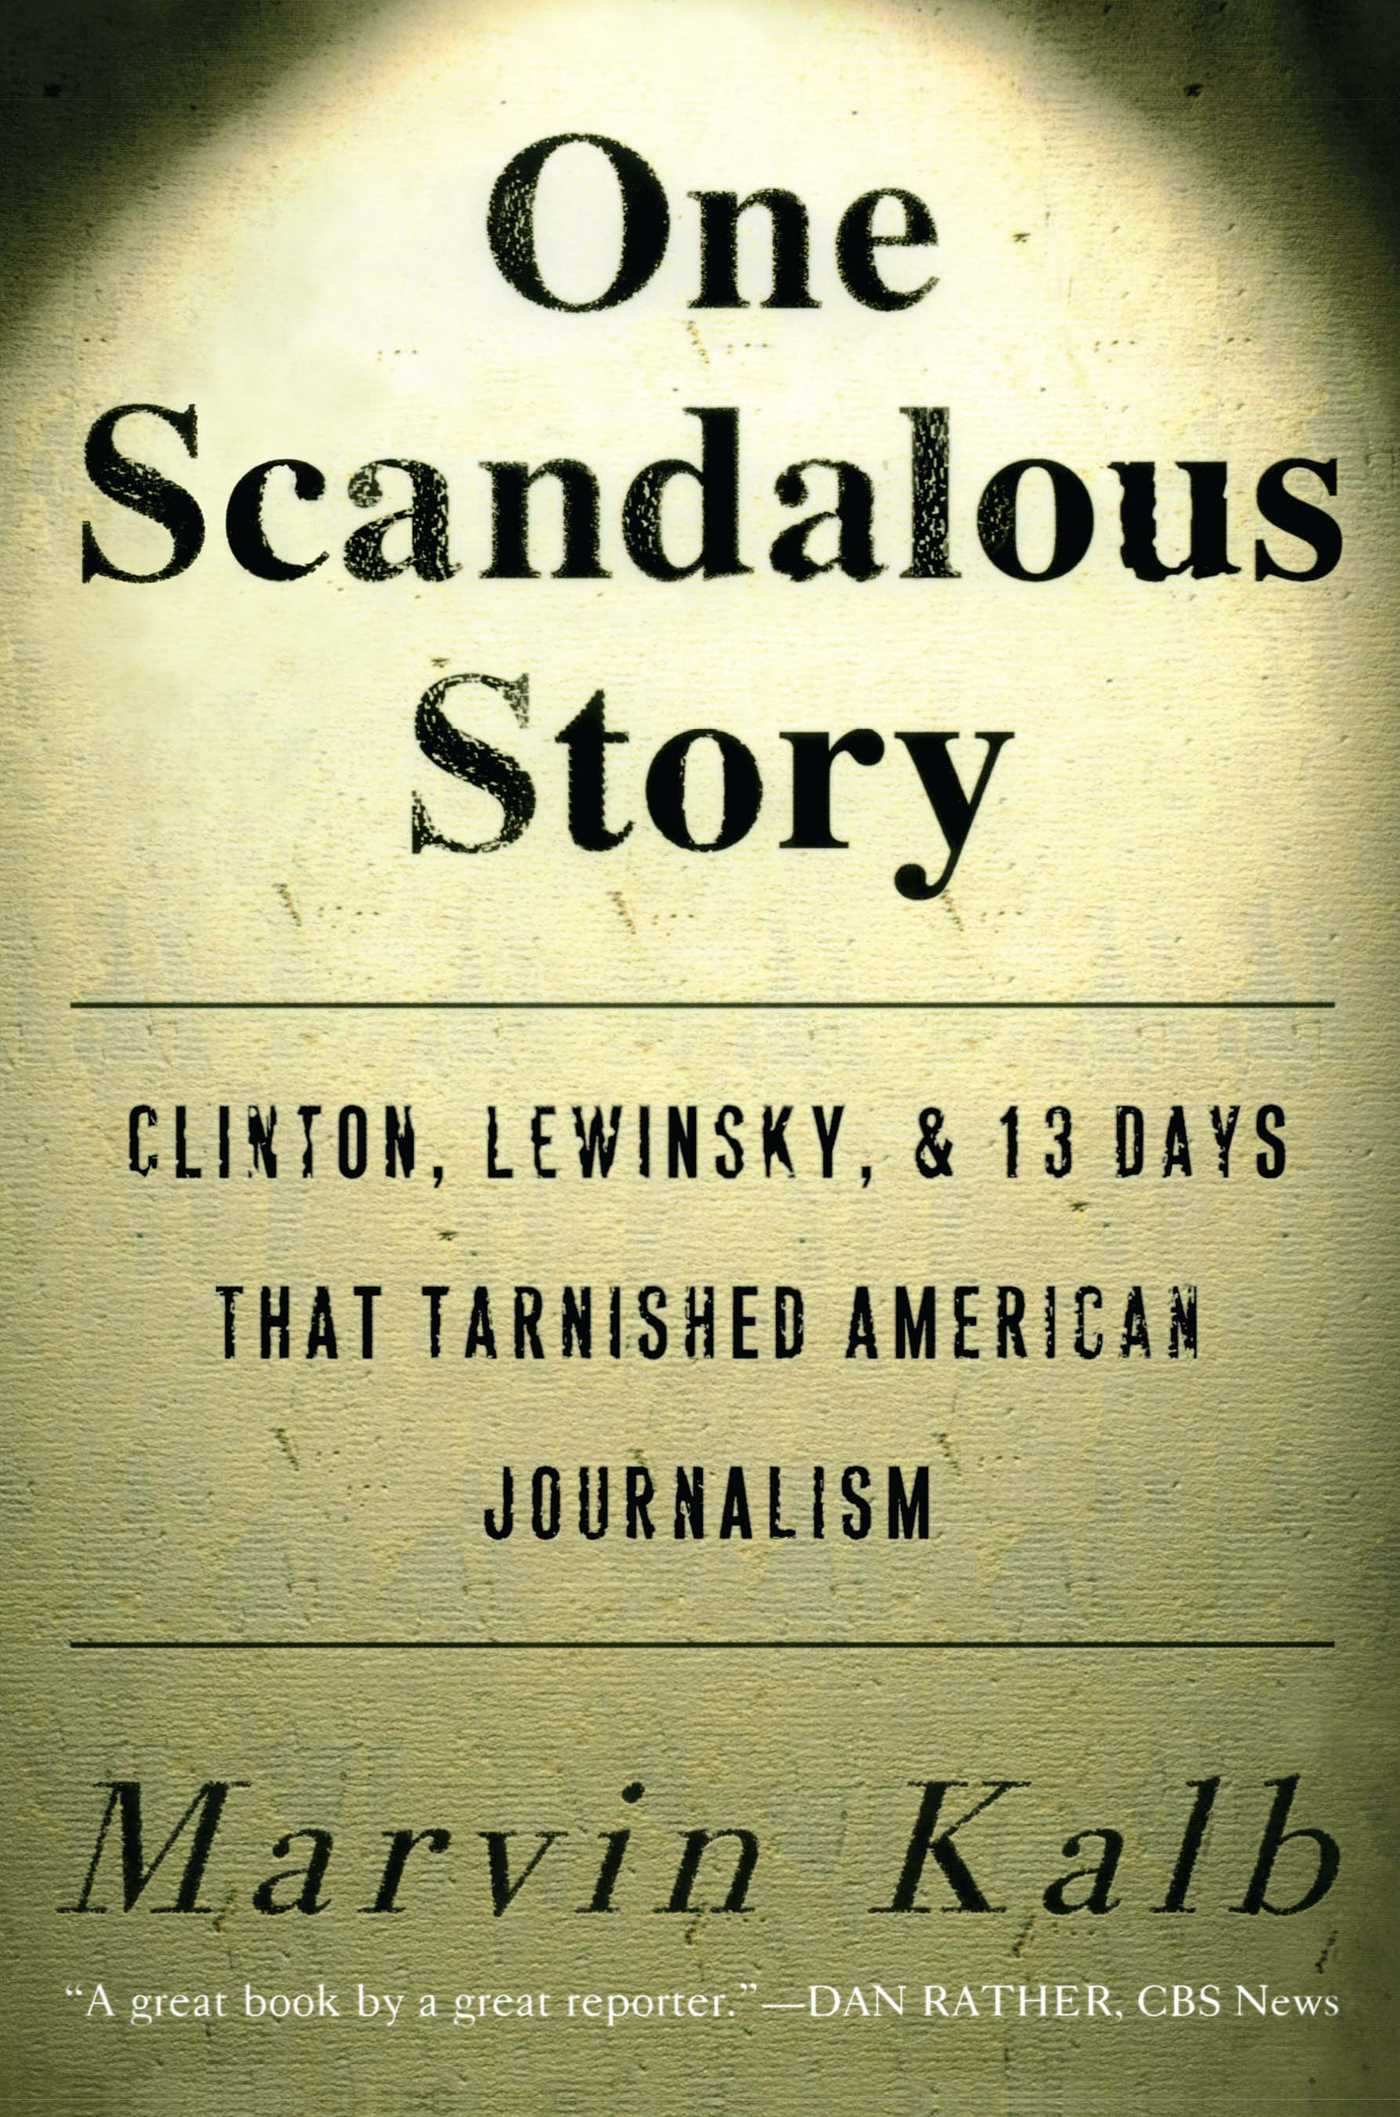 One scandalous story 9781416576372 hr